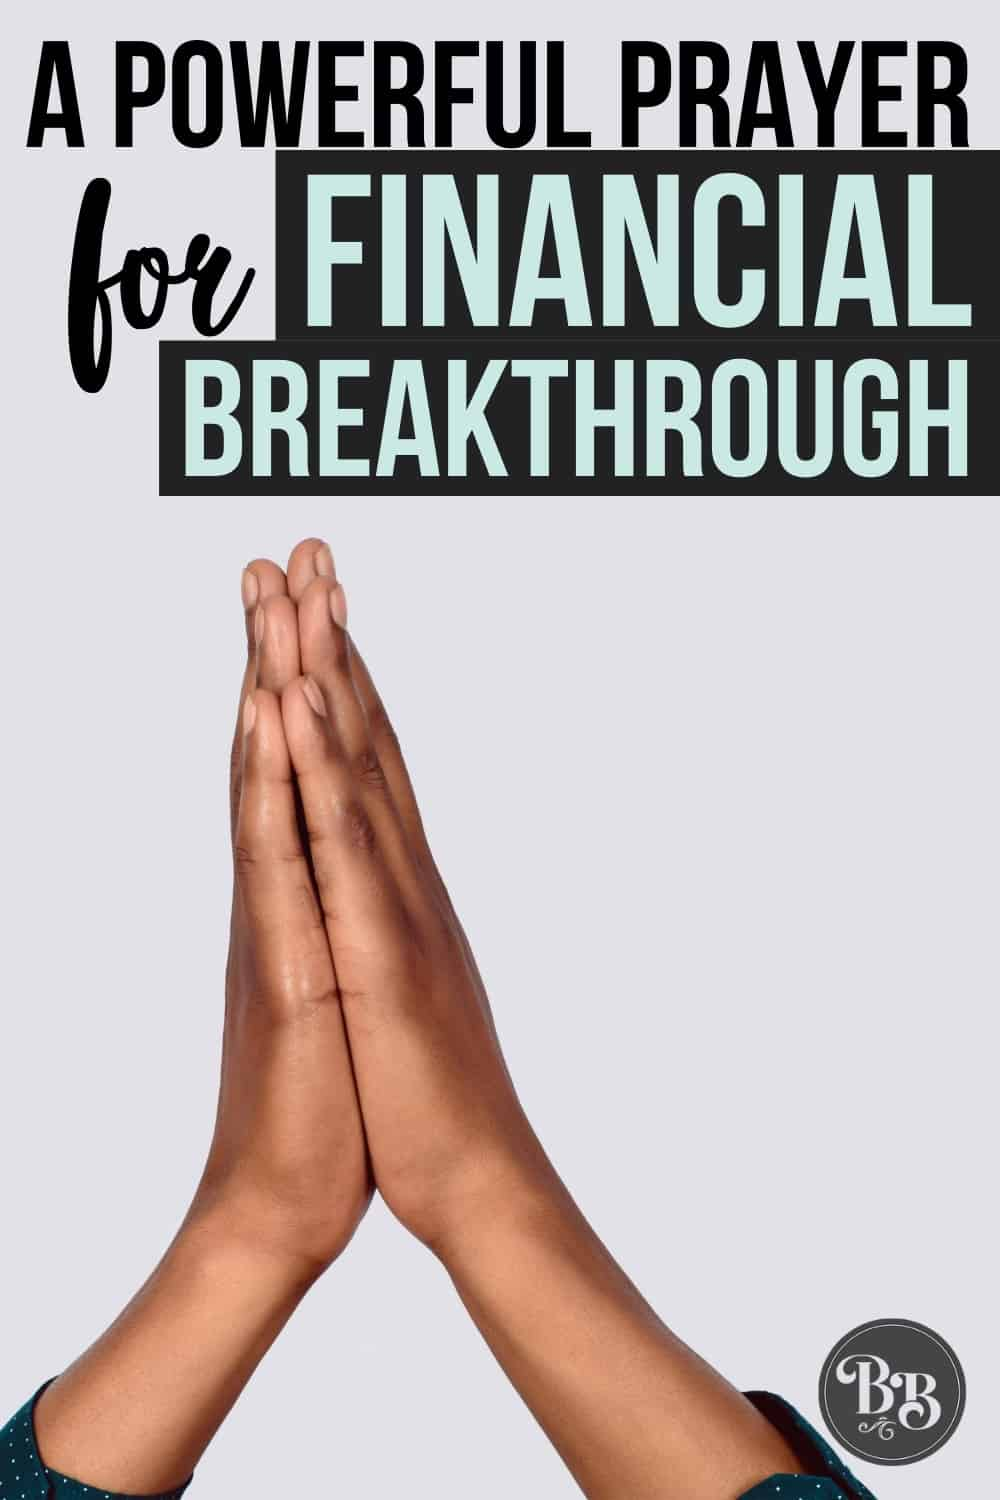 Breakthrough prayer for finances - pin to Pinterest